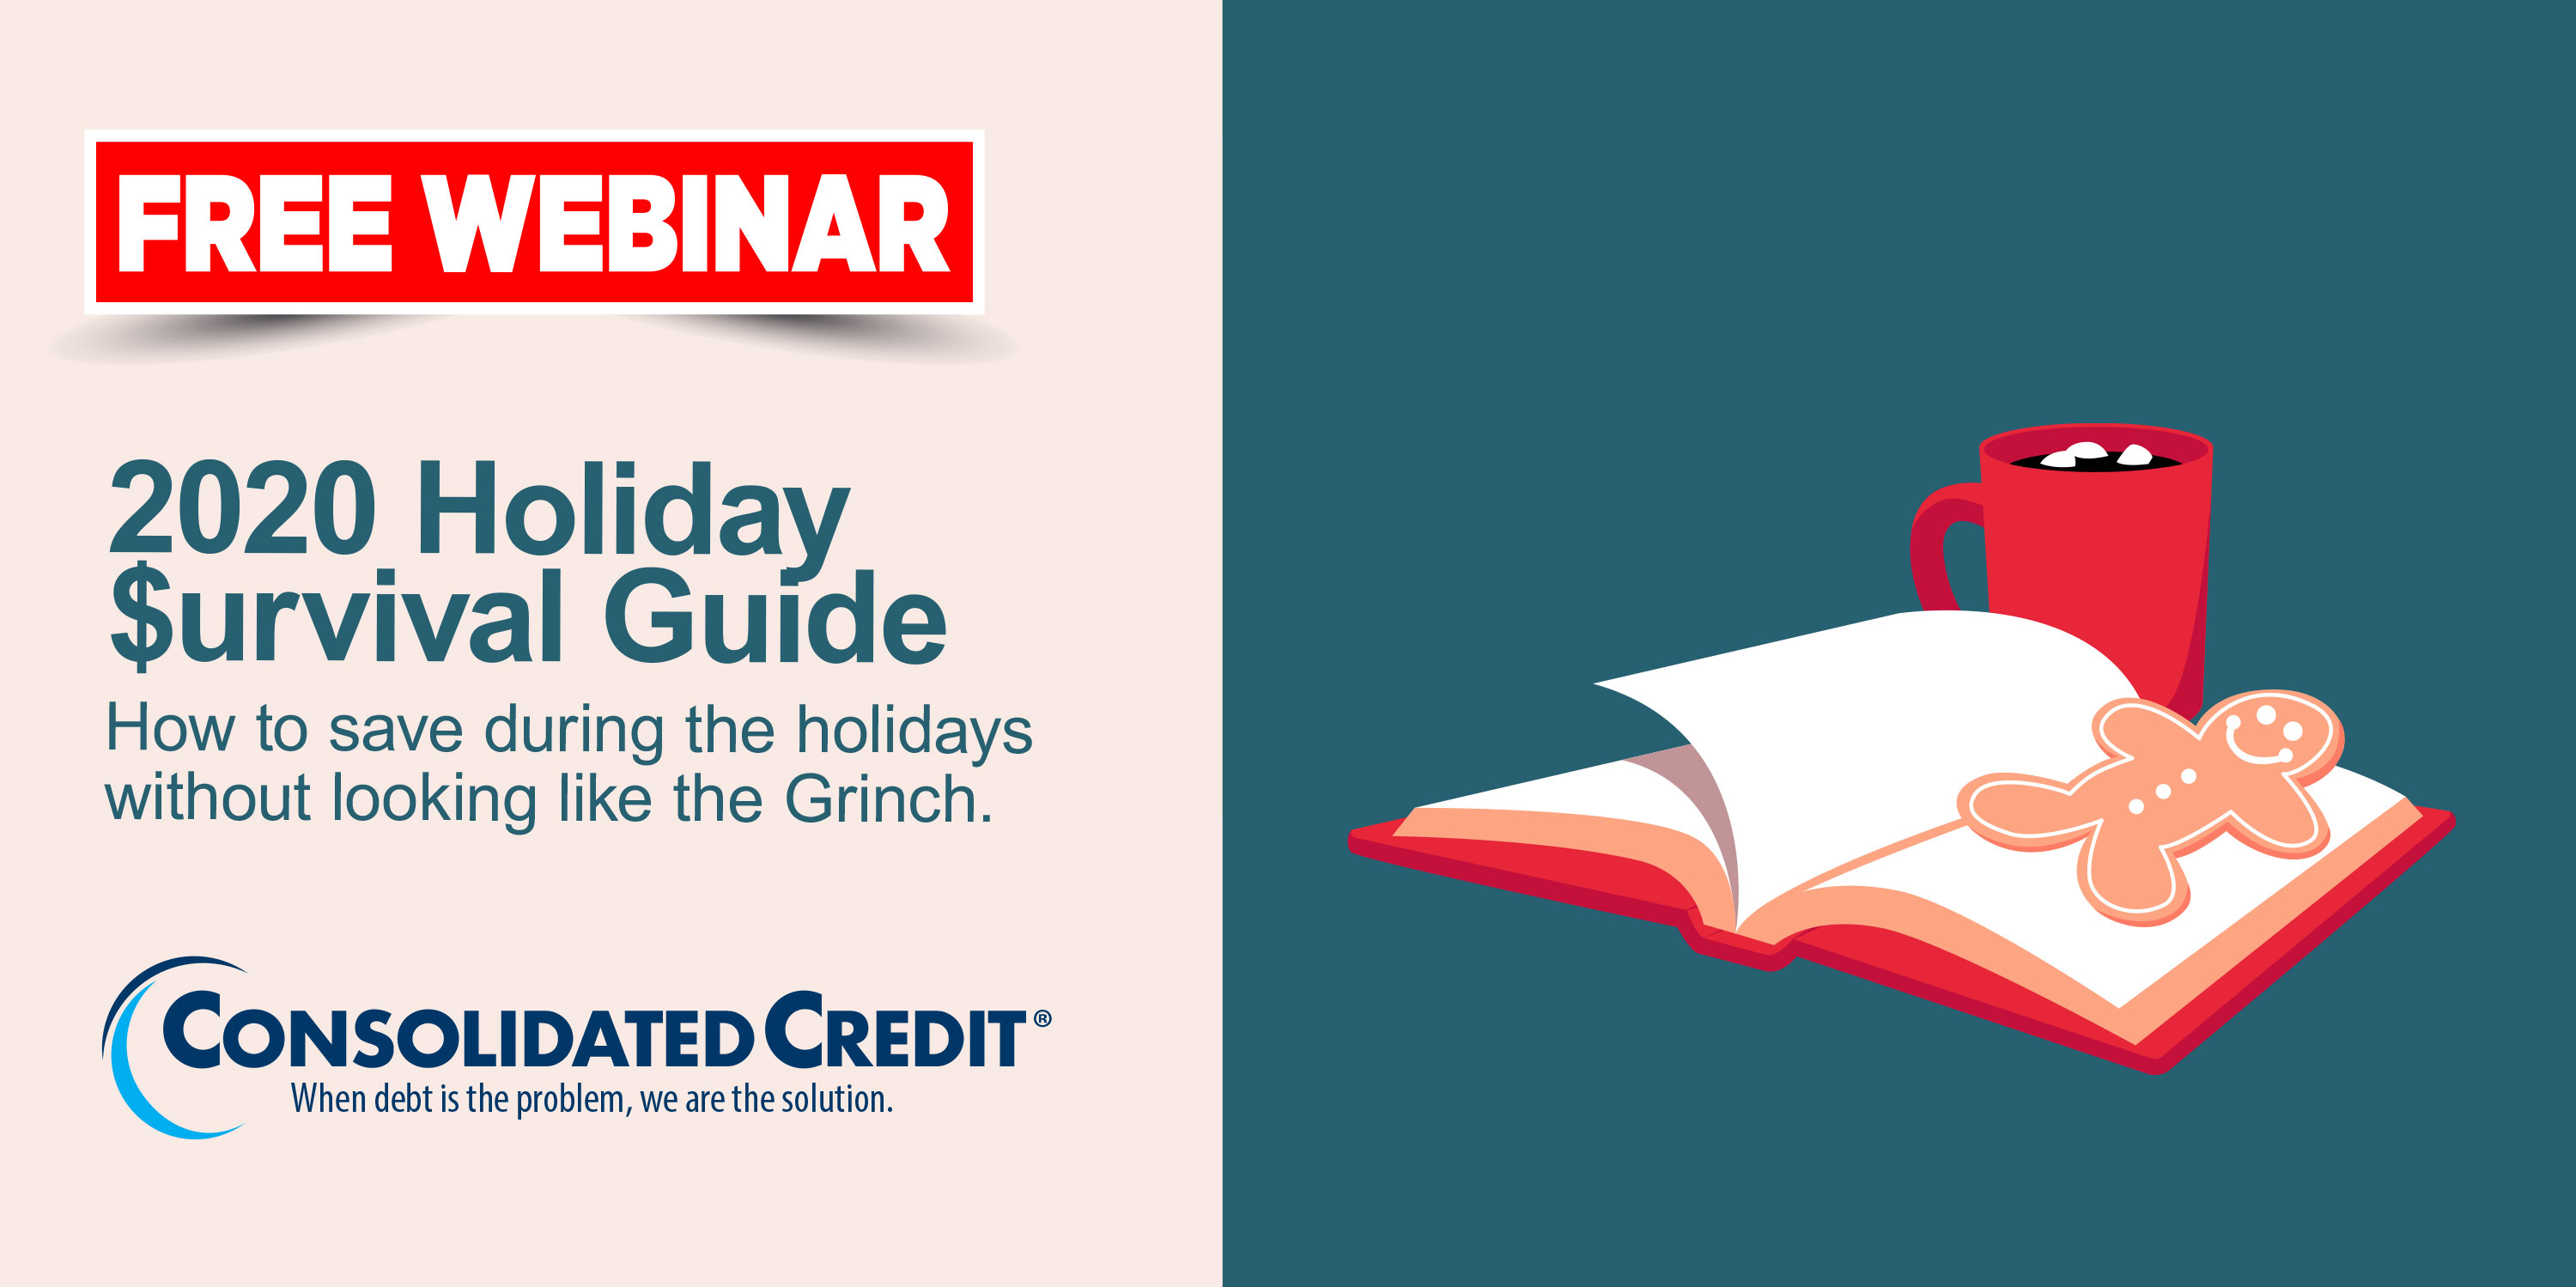 Free Webinar: 2020 Holiday Survival Guide - How to save during the holidays without looking like the Grinch